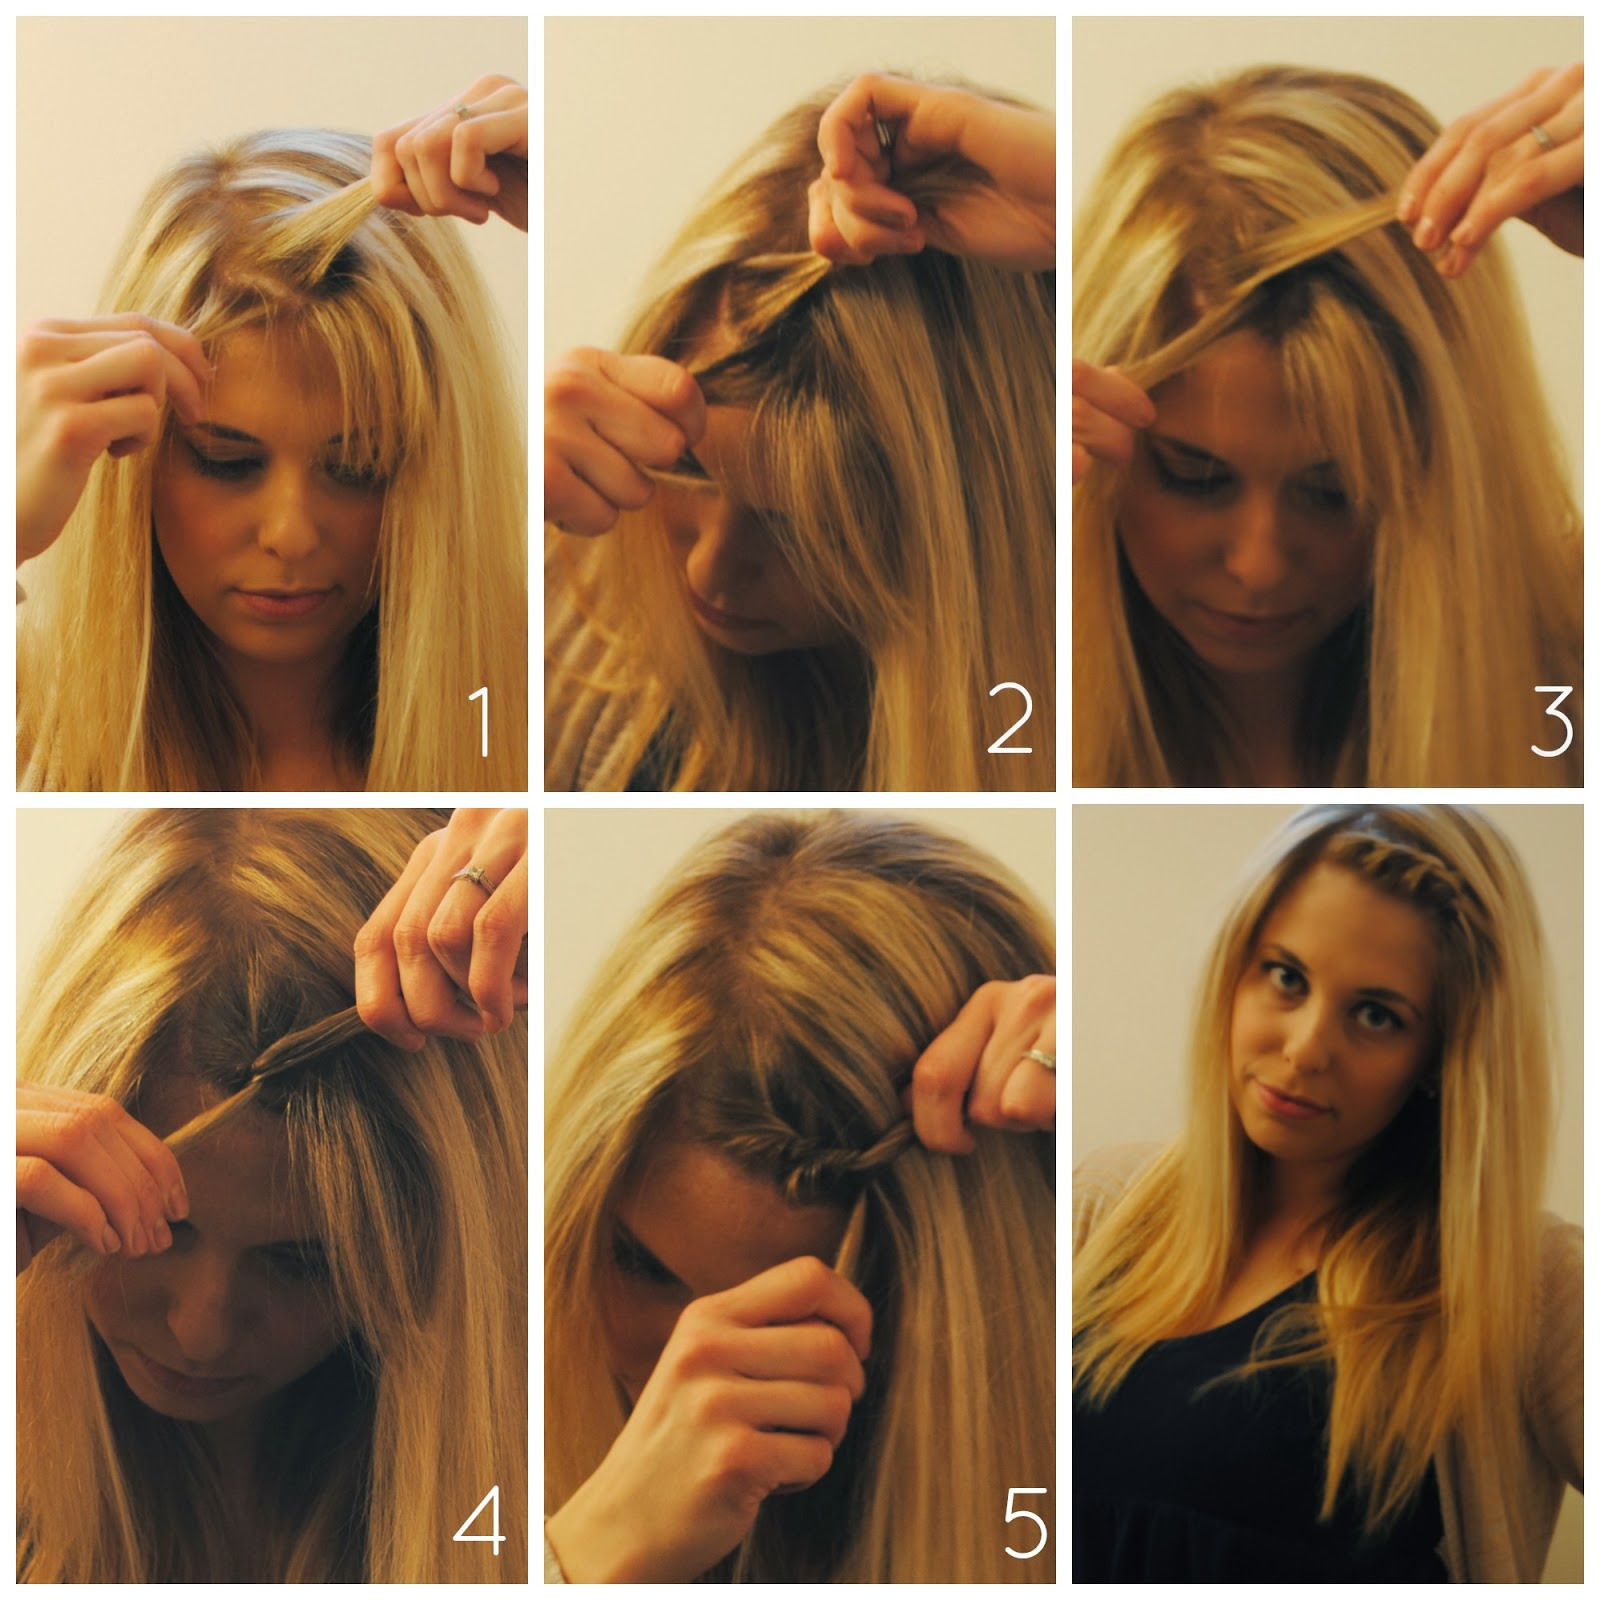 Surprising Sequins And Scissors How To Style Your Bangs When Growing Them Out Short Hairstyles Gunalazisus